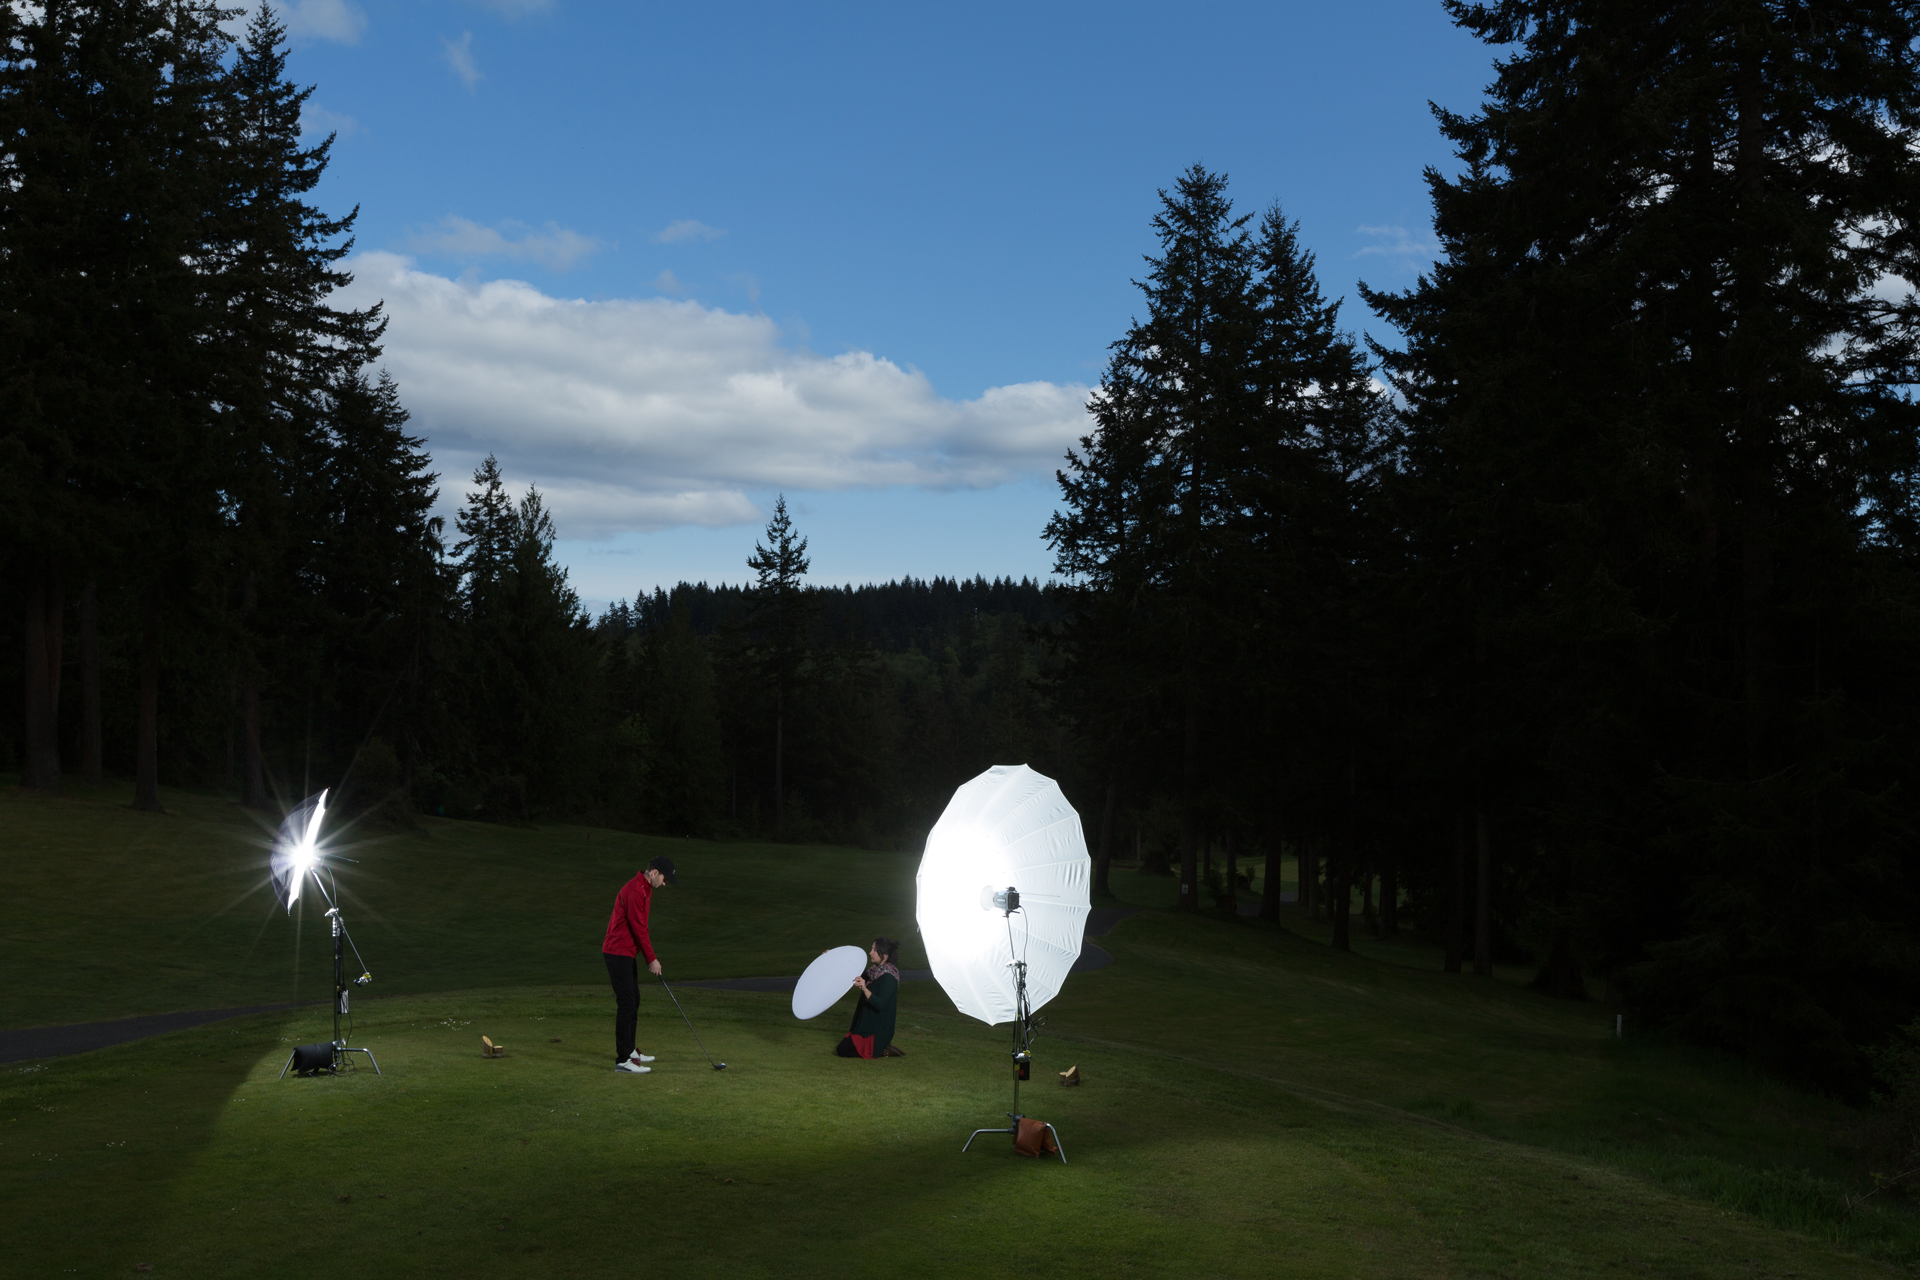 Commercial Photography Behind the Scenes